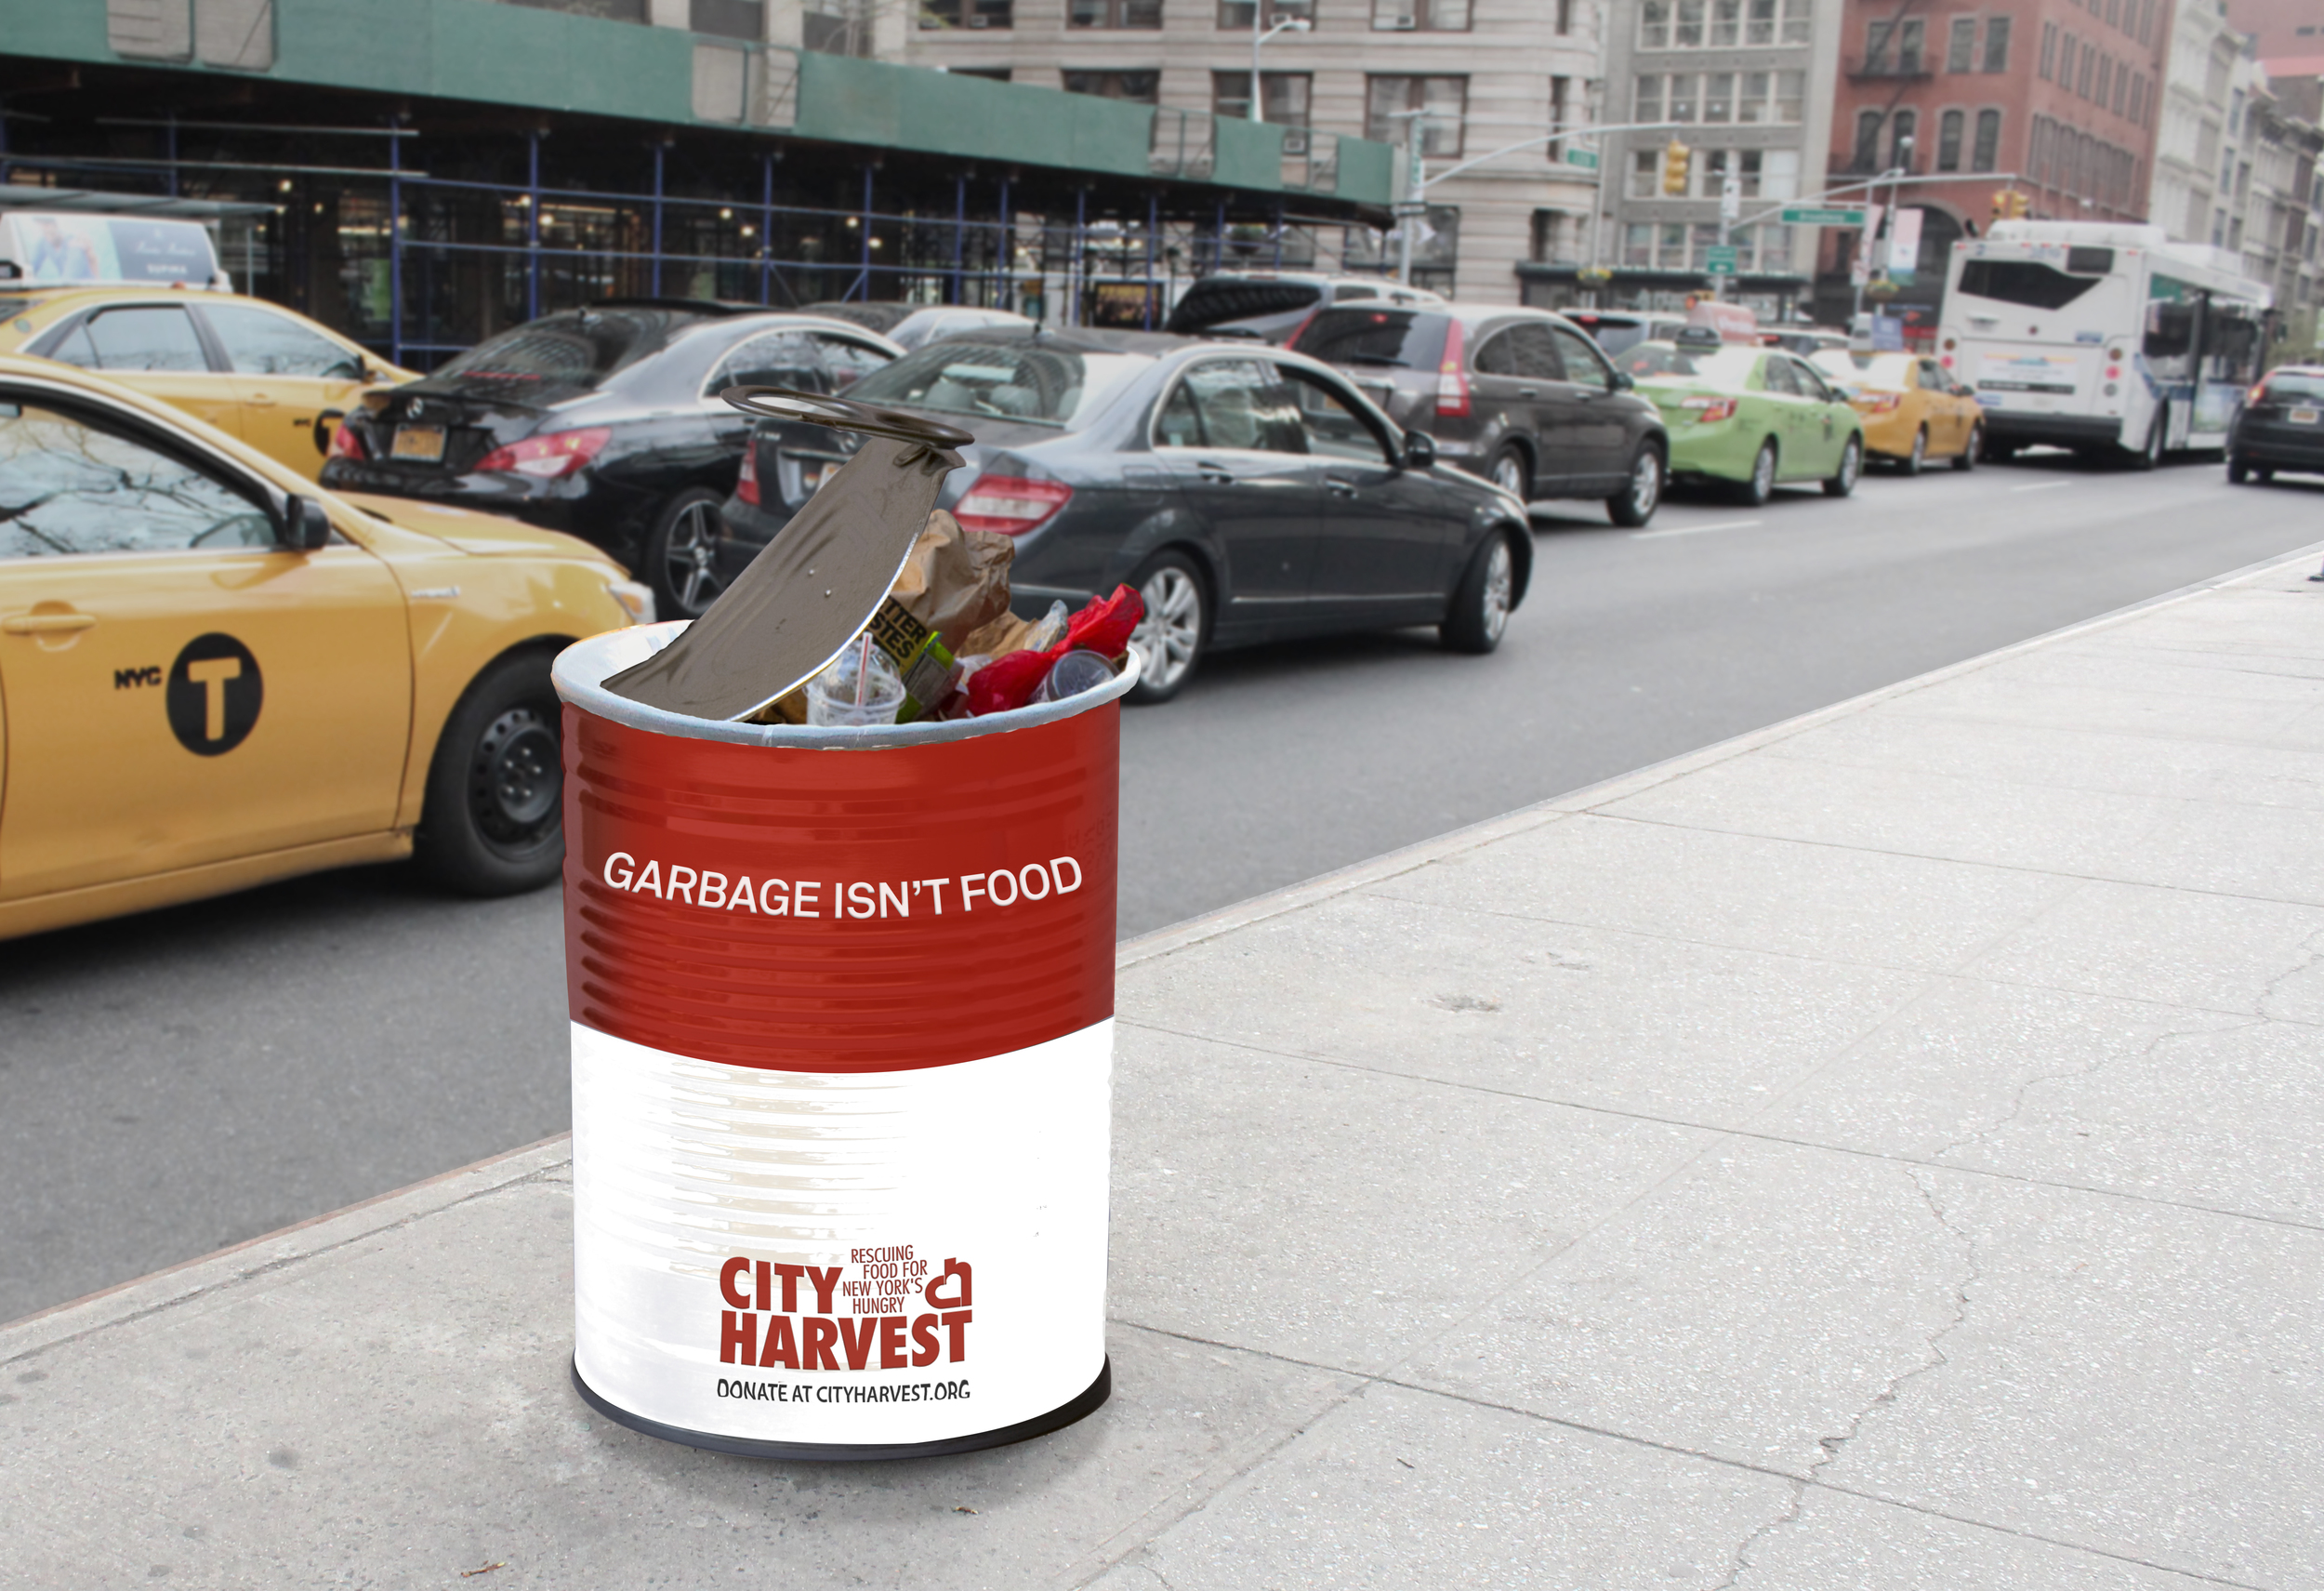 To promote the importance of City Harvest's mission and to encourage donations, garbage cans around the city are made to look like food cans, showing where some of the city's poorest residents are forced to go for food.